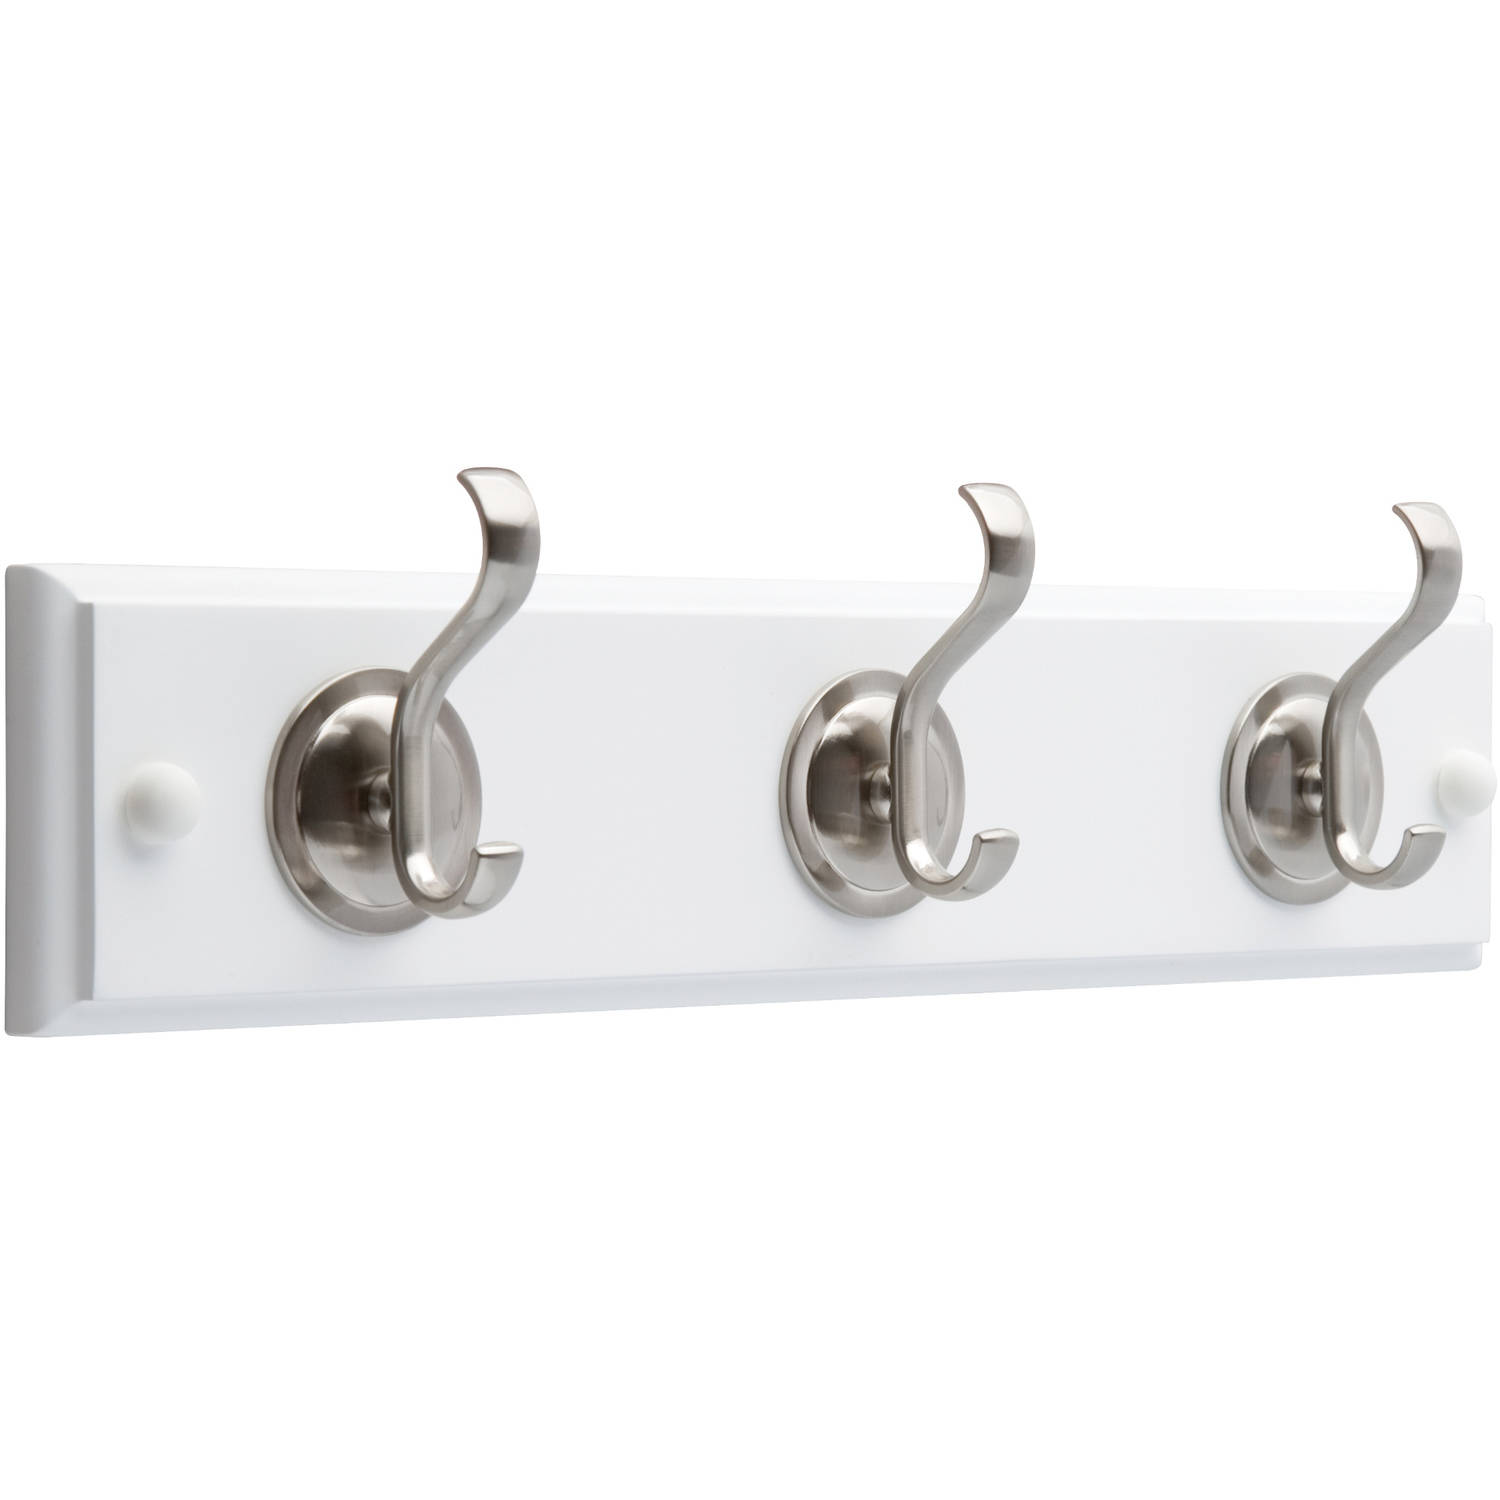 Office Depot Door Hangers | Cubicle Coat Hook | Coat Hooks for Cubicles